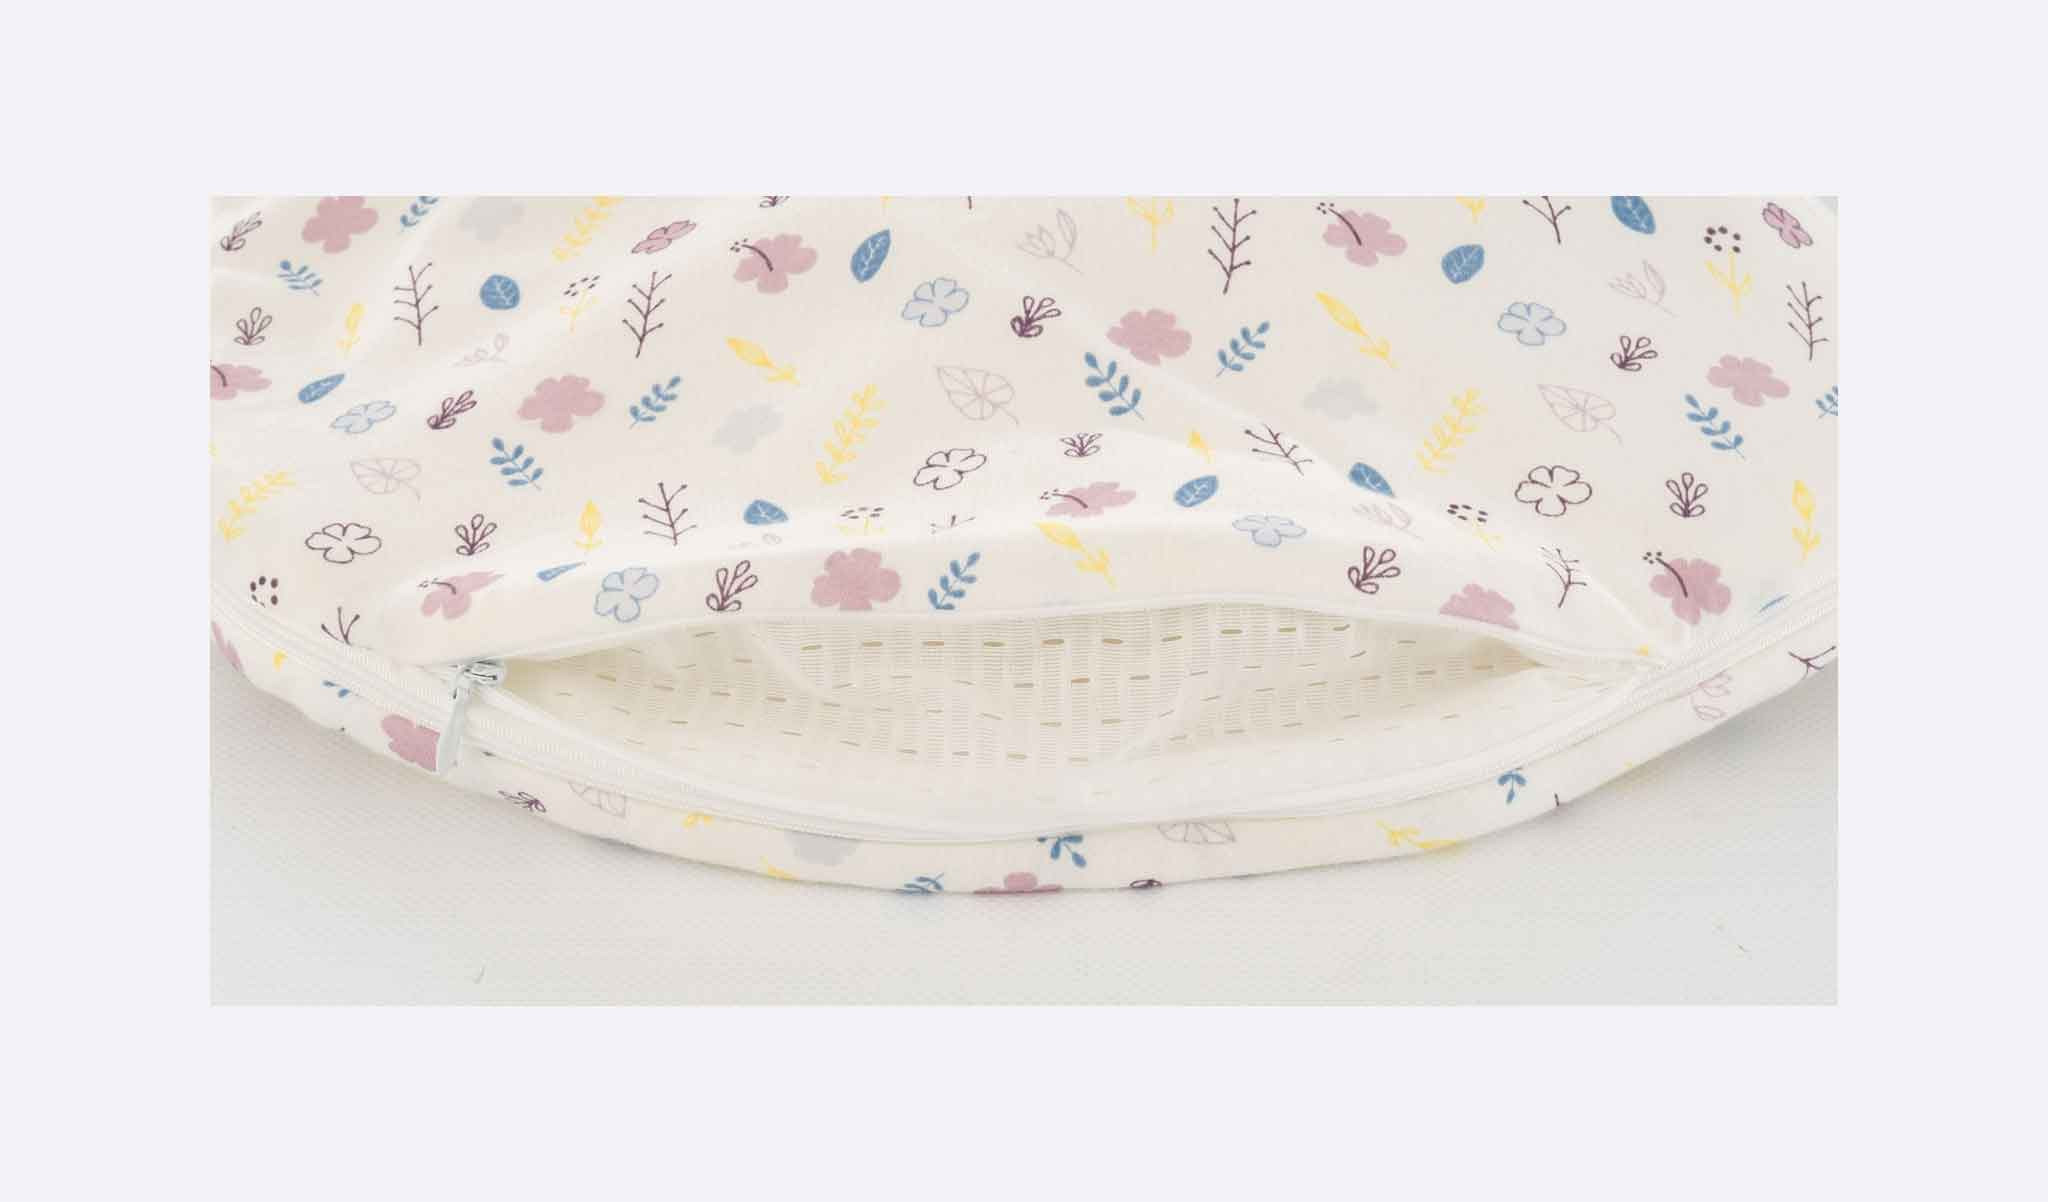 S0103207 - sleeping bag floral